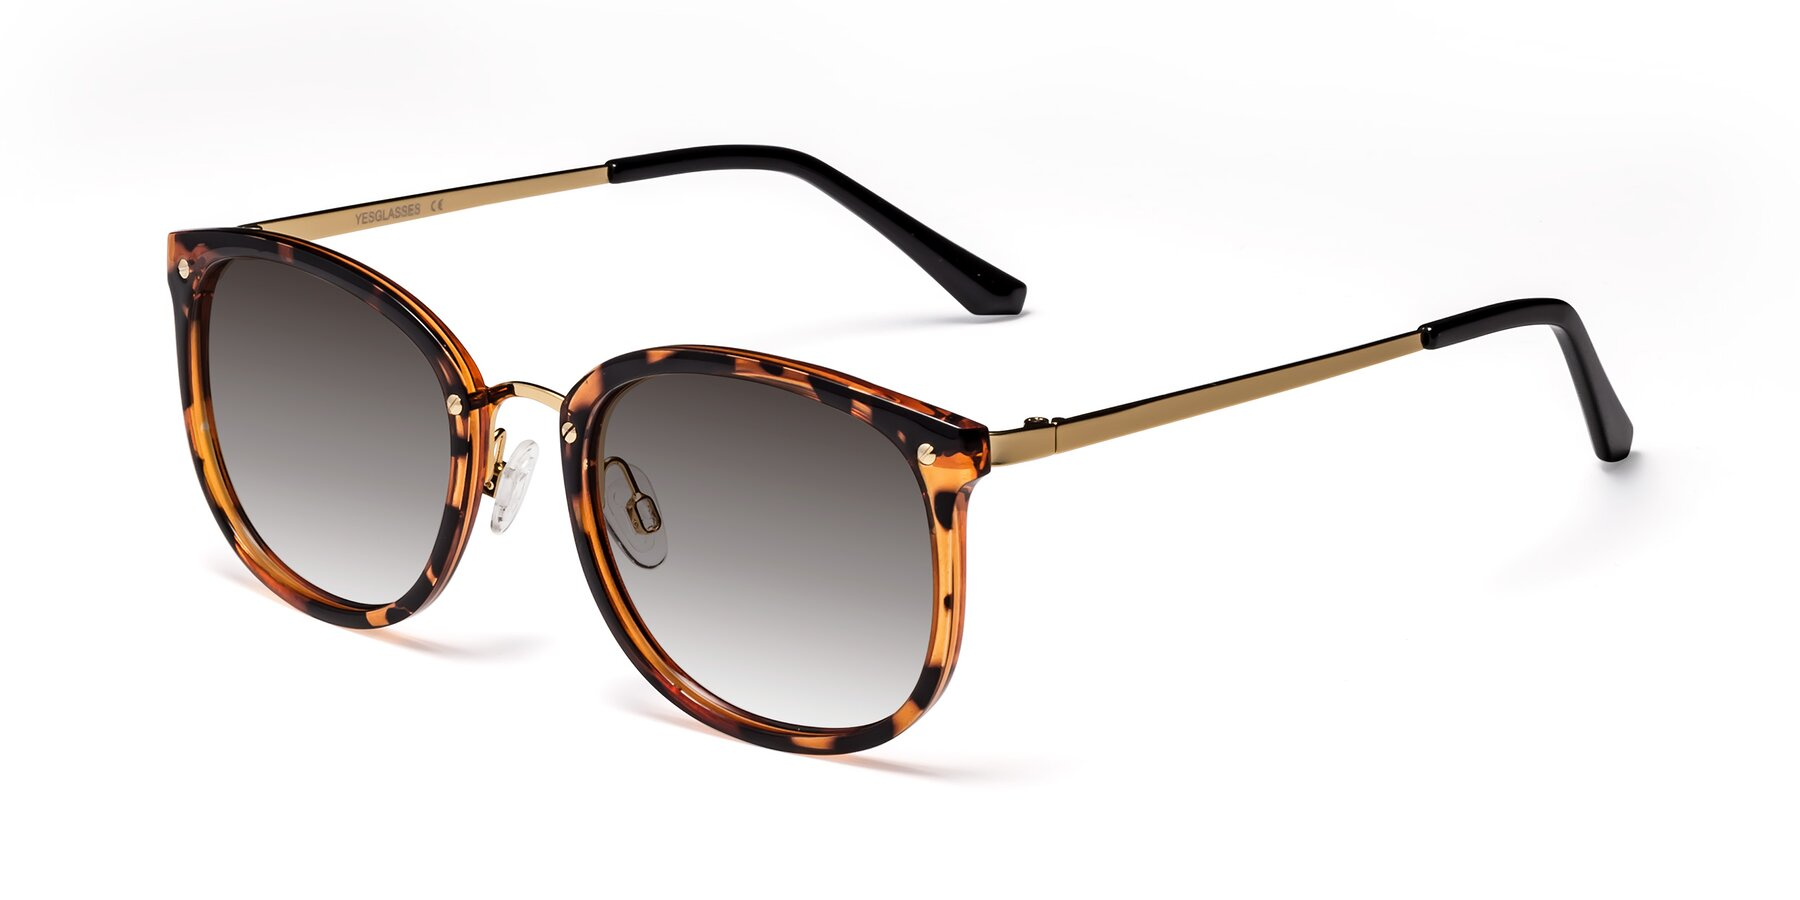 Angle of Timeless in Tortoise-Golden with Gray Gradient Lenses